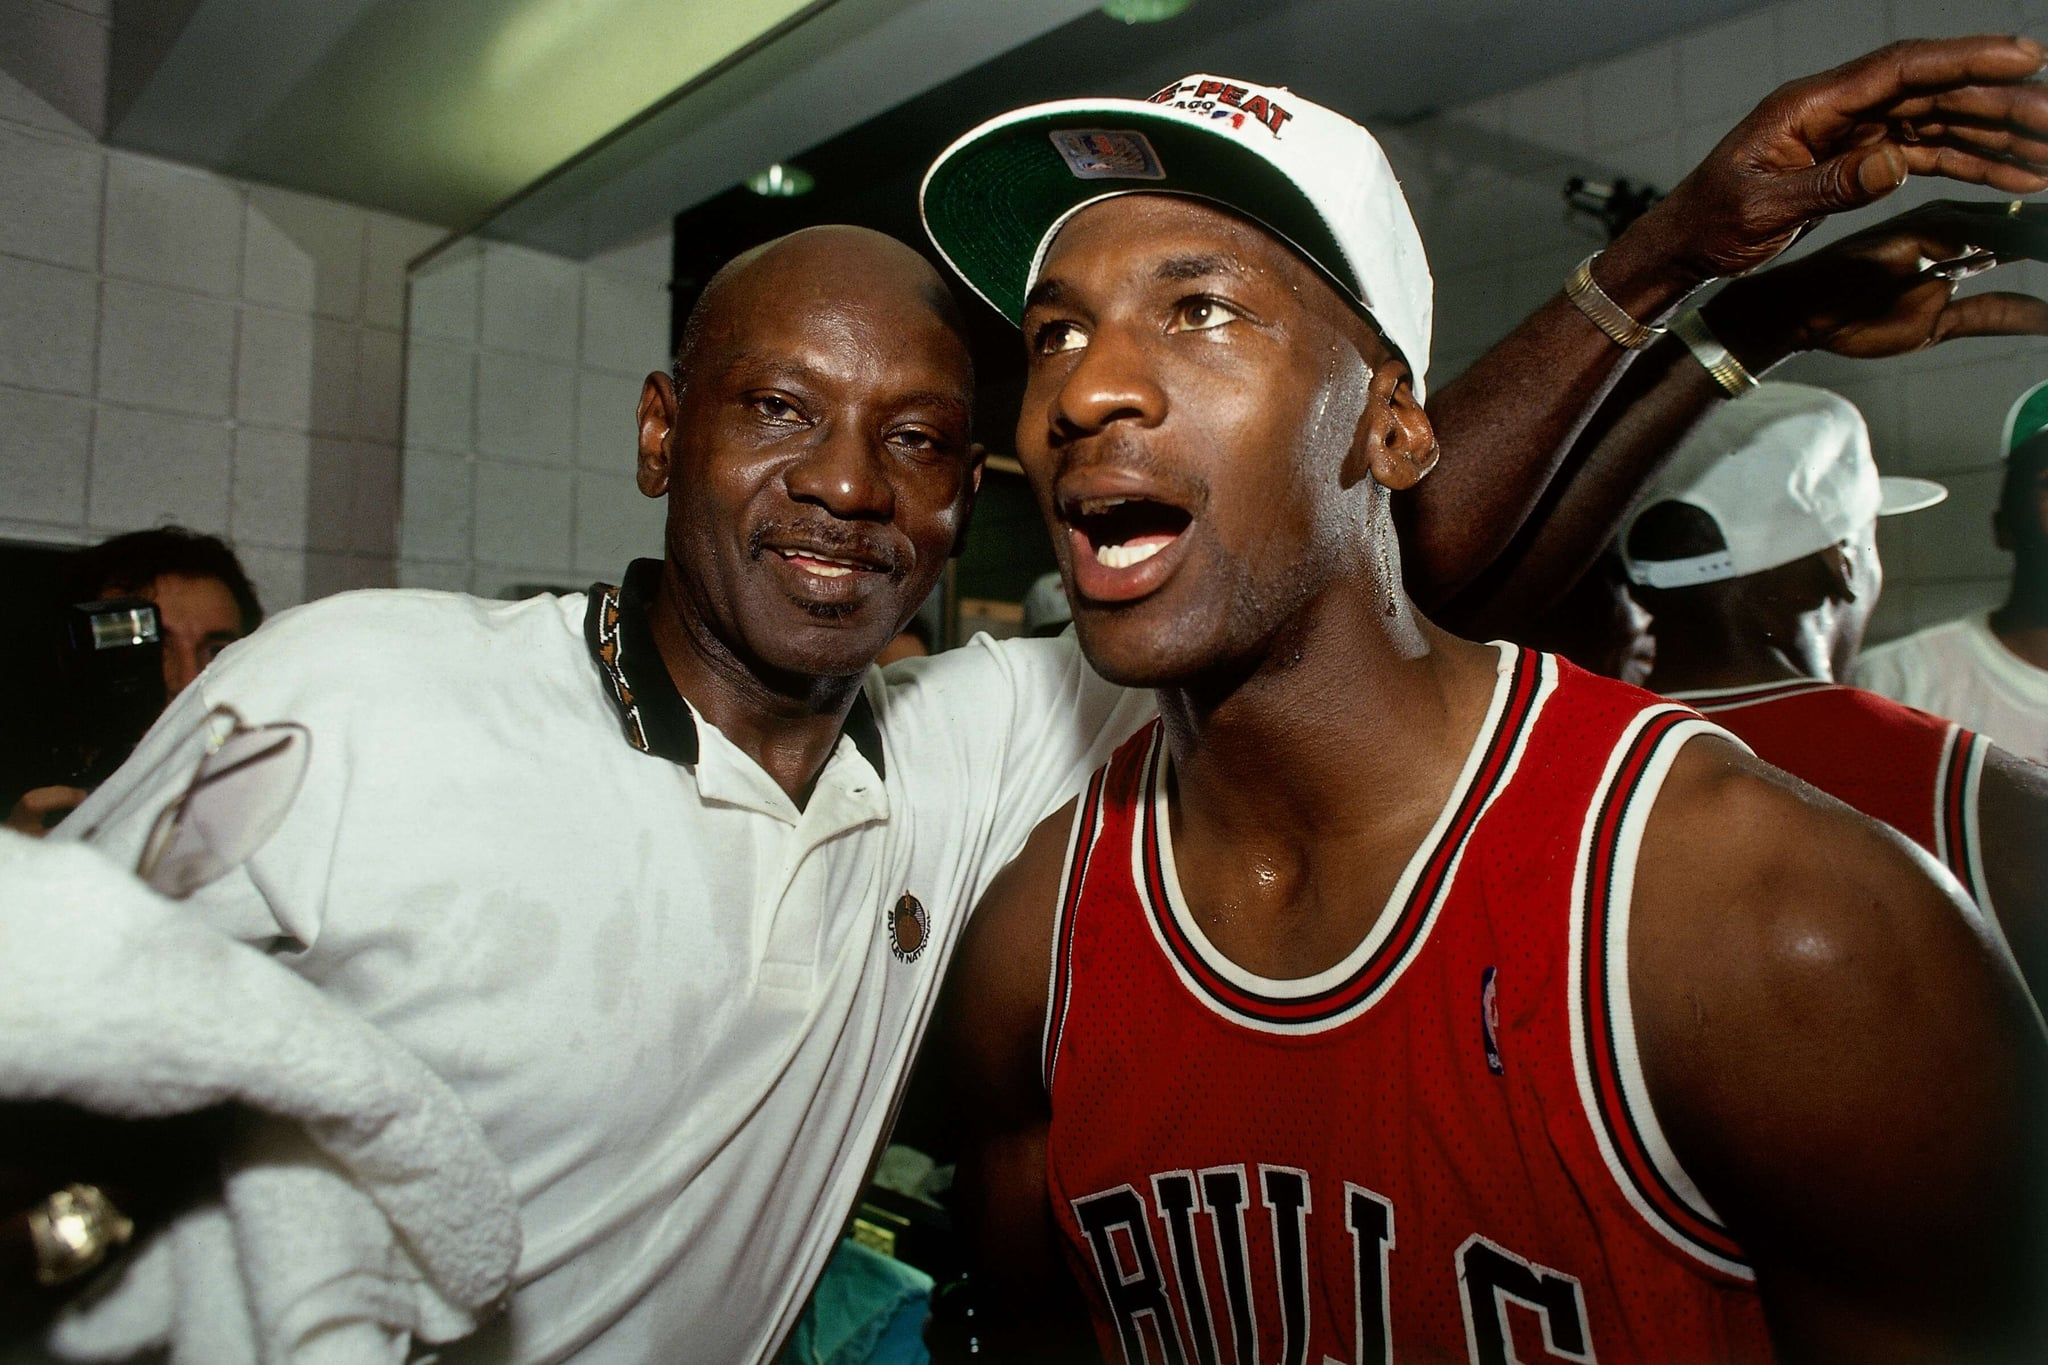 PHOENIX - JUNE 20:  Michael Jordan #23 of the Chicago Bulls celebrates winning the NBA Championship with his father after Game Six of the 1993 NBA Finals on June 20, 1993 at th America West Arena in Phoenix, Arizona.  The Bulls won 99-98.  NOTE TO USER: User expressly acknowledges and agrees that, by downloading and/or using this Photograph, user is consenting to the terms and conditions of the Getty Images License Agreement. Mandatory Copyright Notice: Copyright 1993 NBAE  (Photo by Andrew D. Bernstein/NBAE via Getty Images)